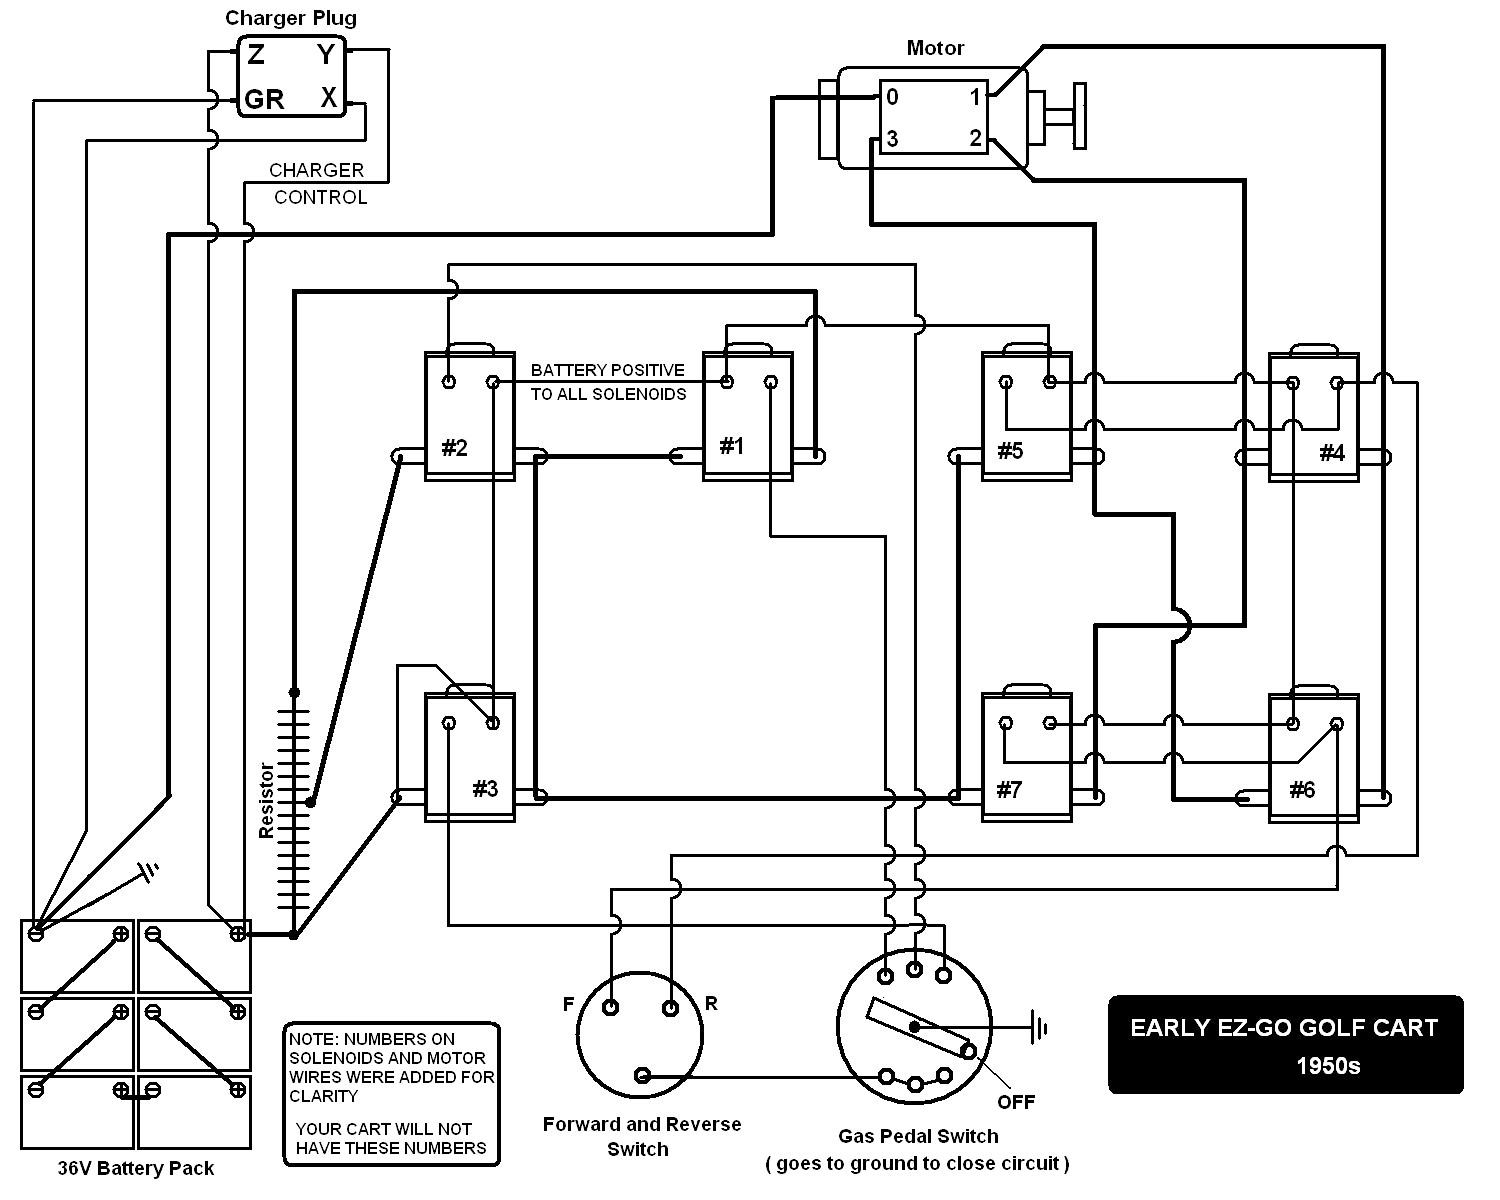 ez go wiring harness diagram 3 wheeler just wiring data rh ag skiphire co uk